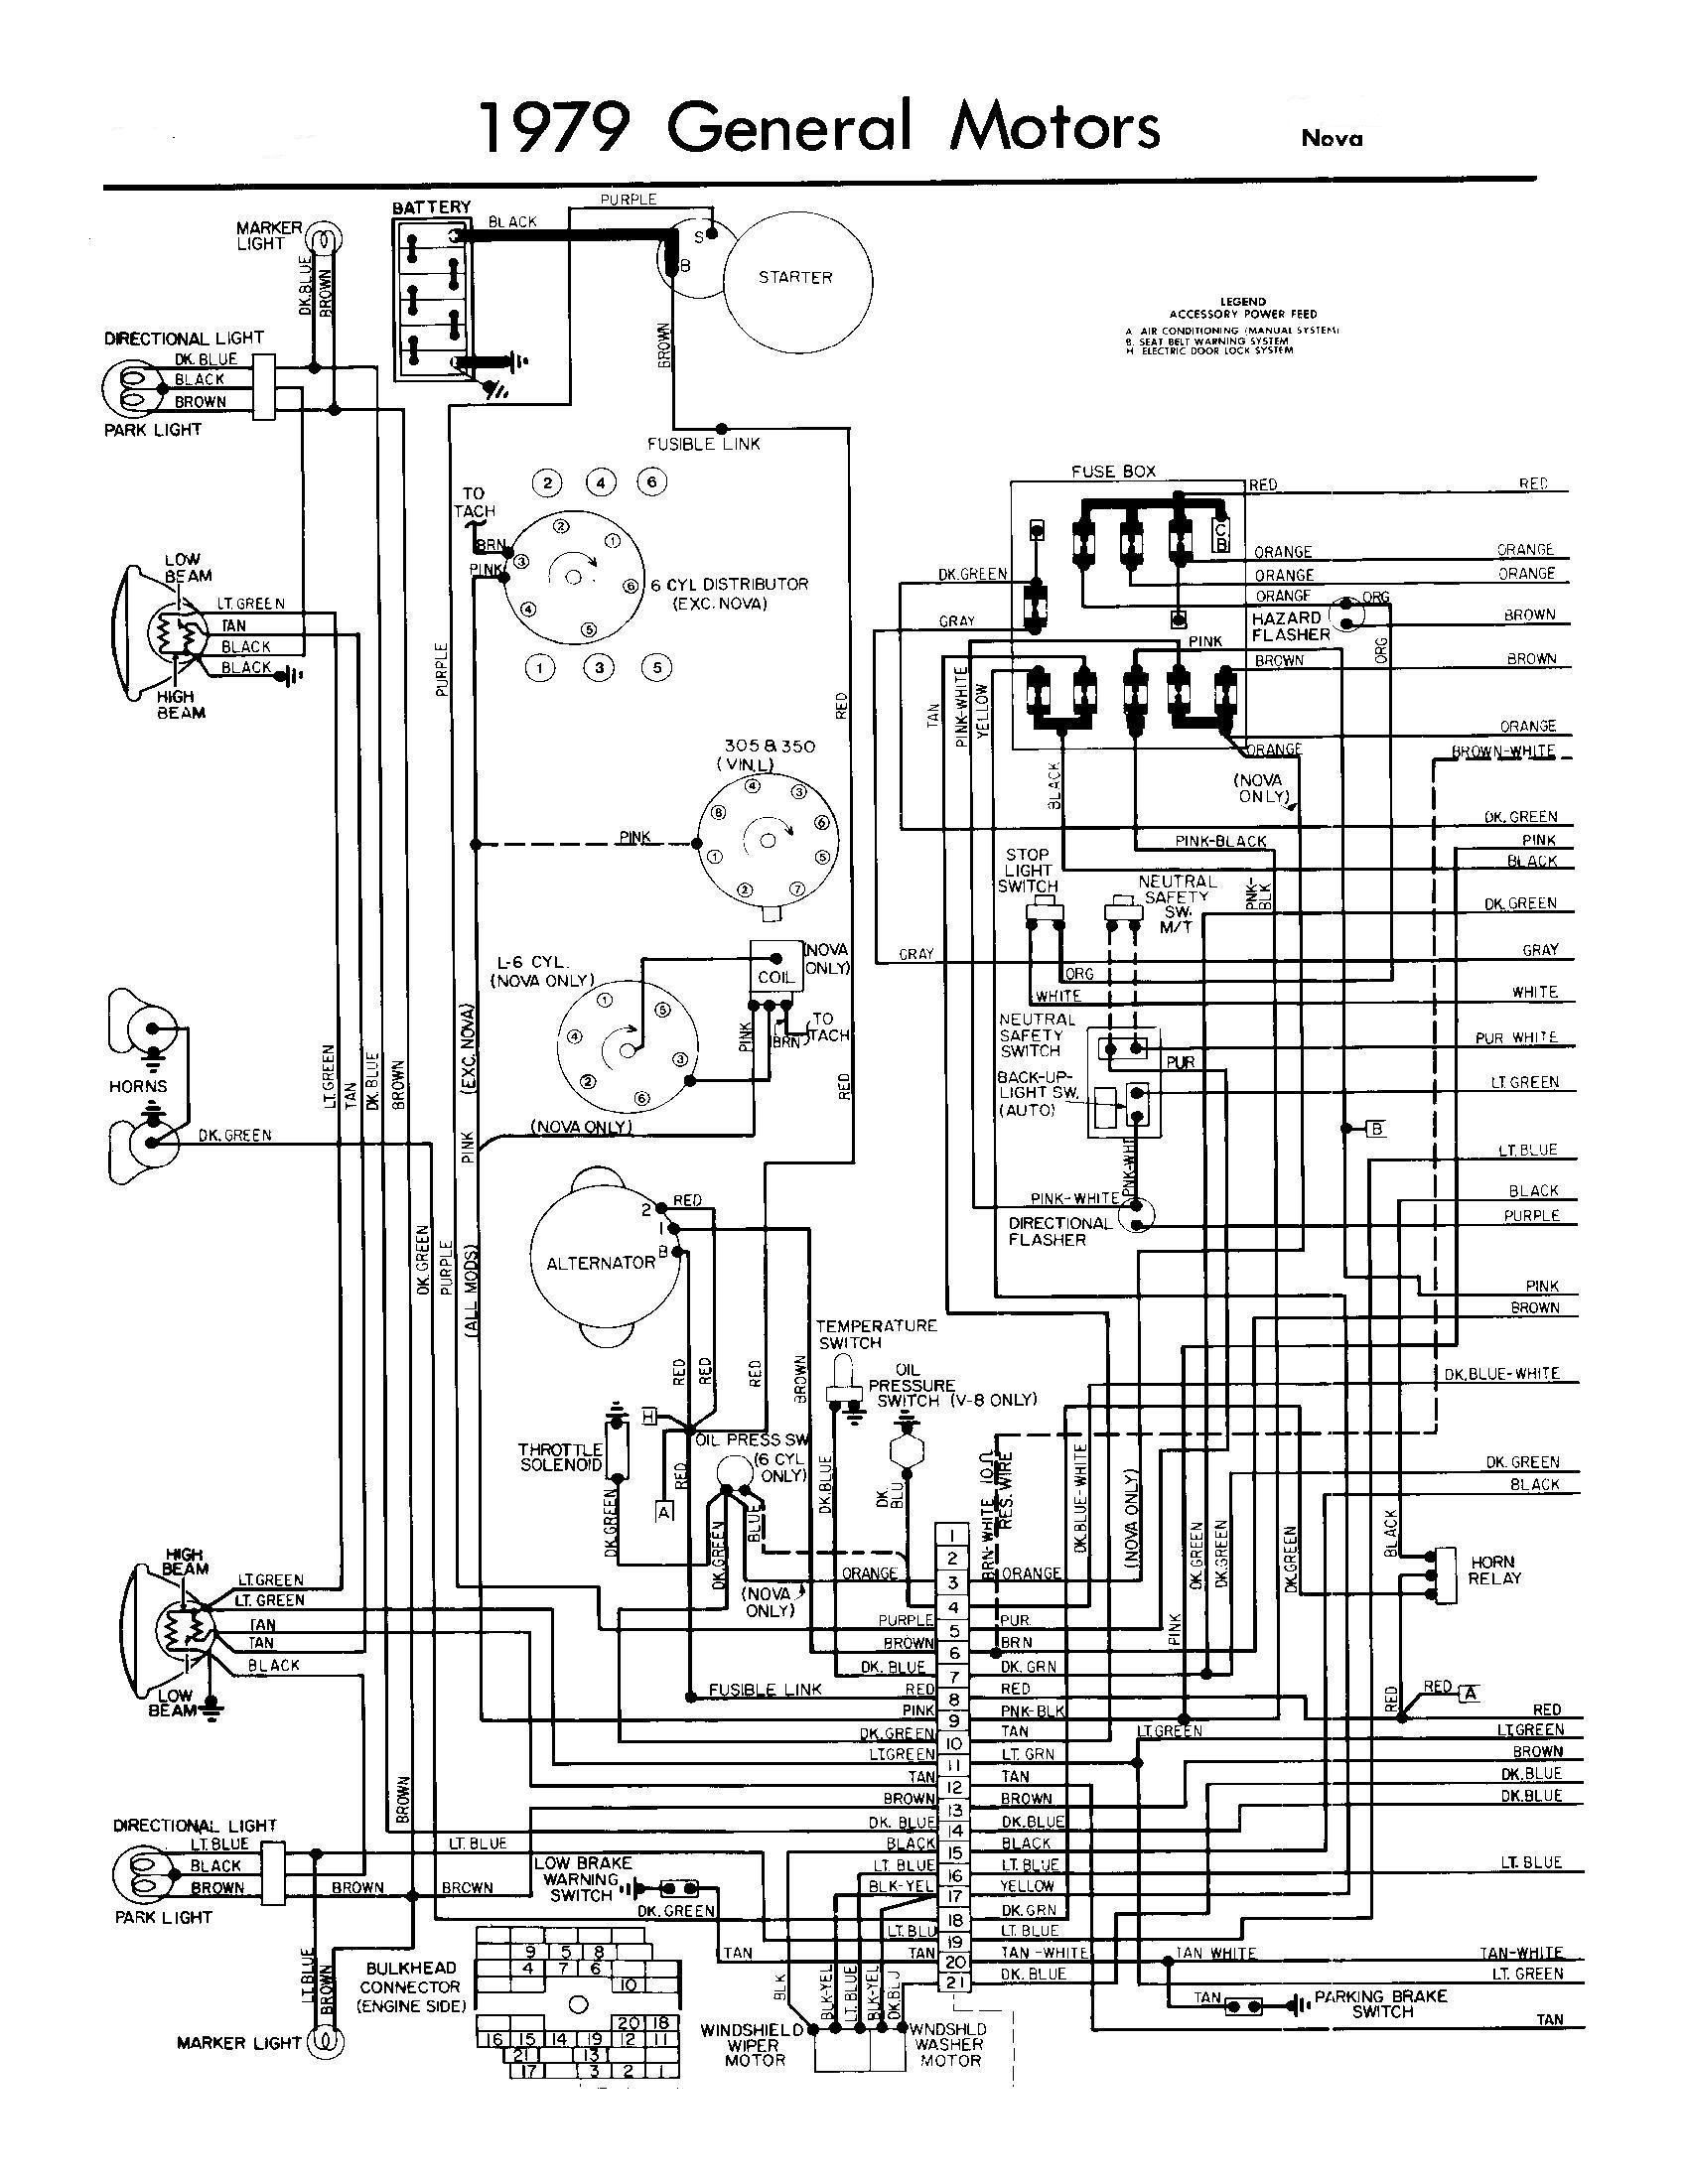 1987 corvette ignition switch wiring diagram